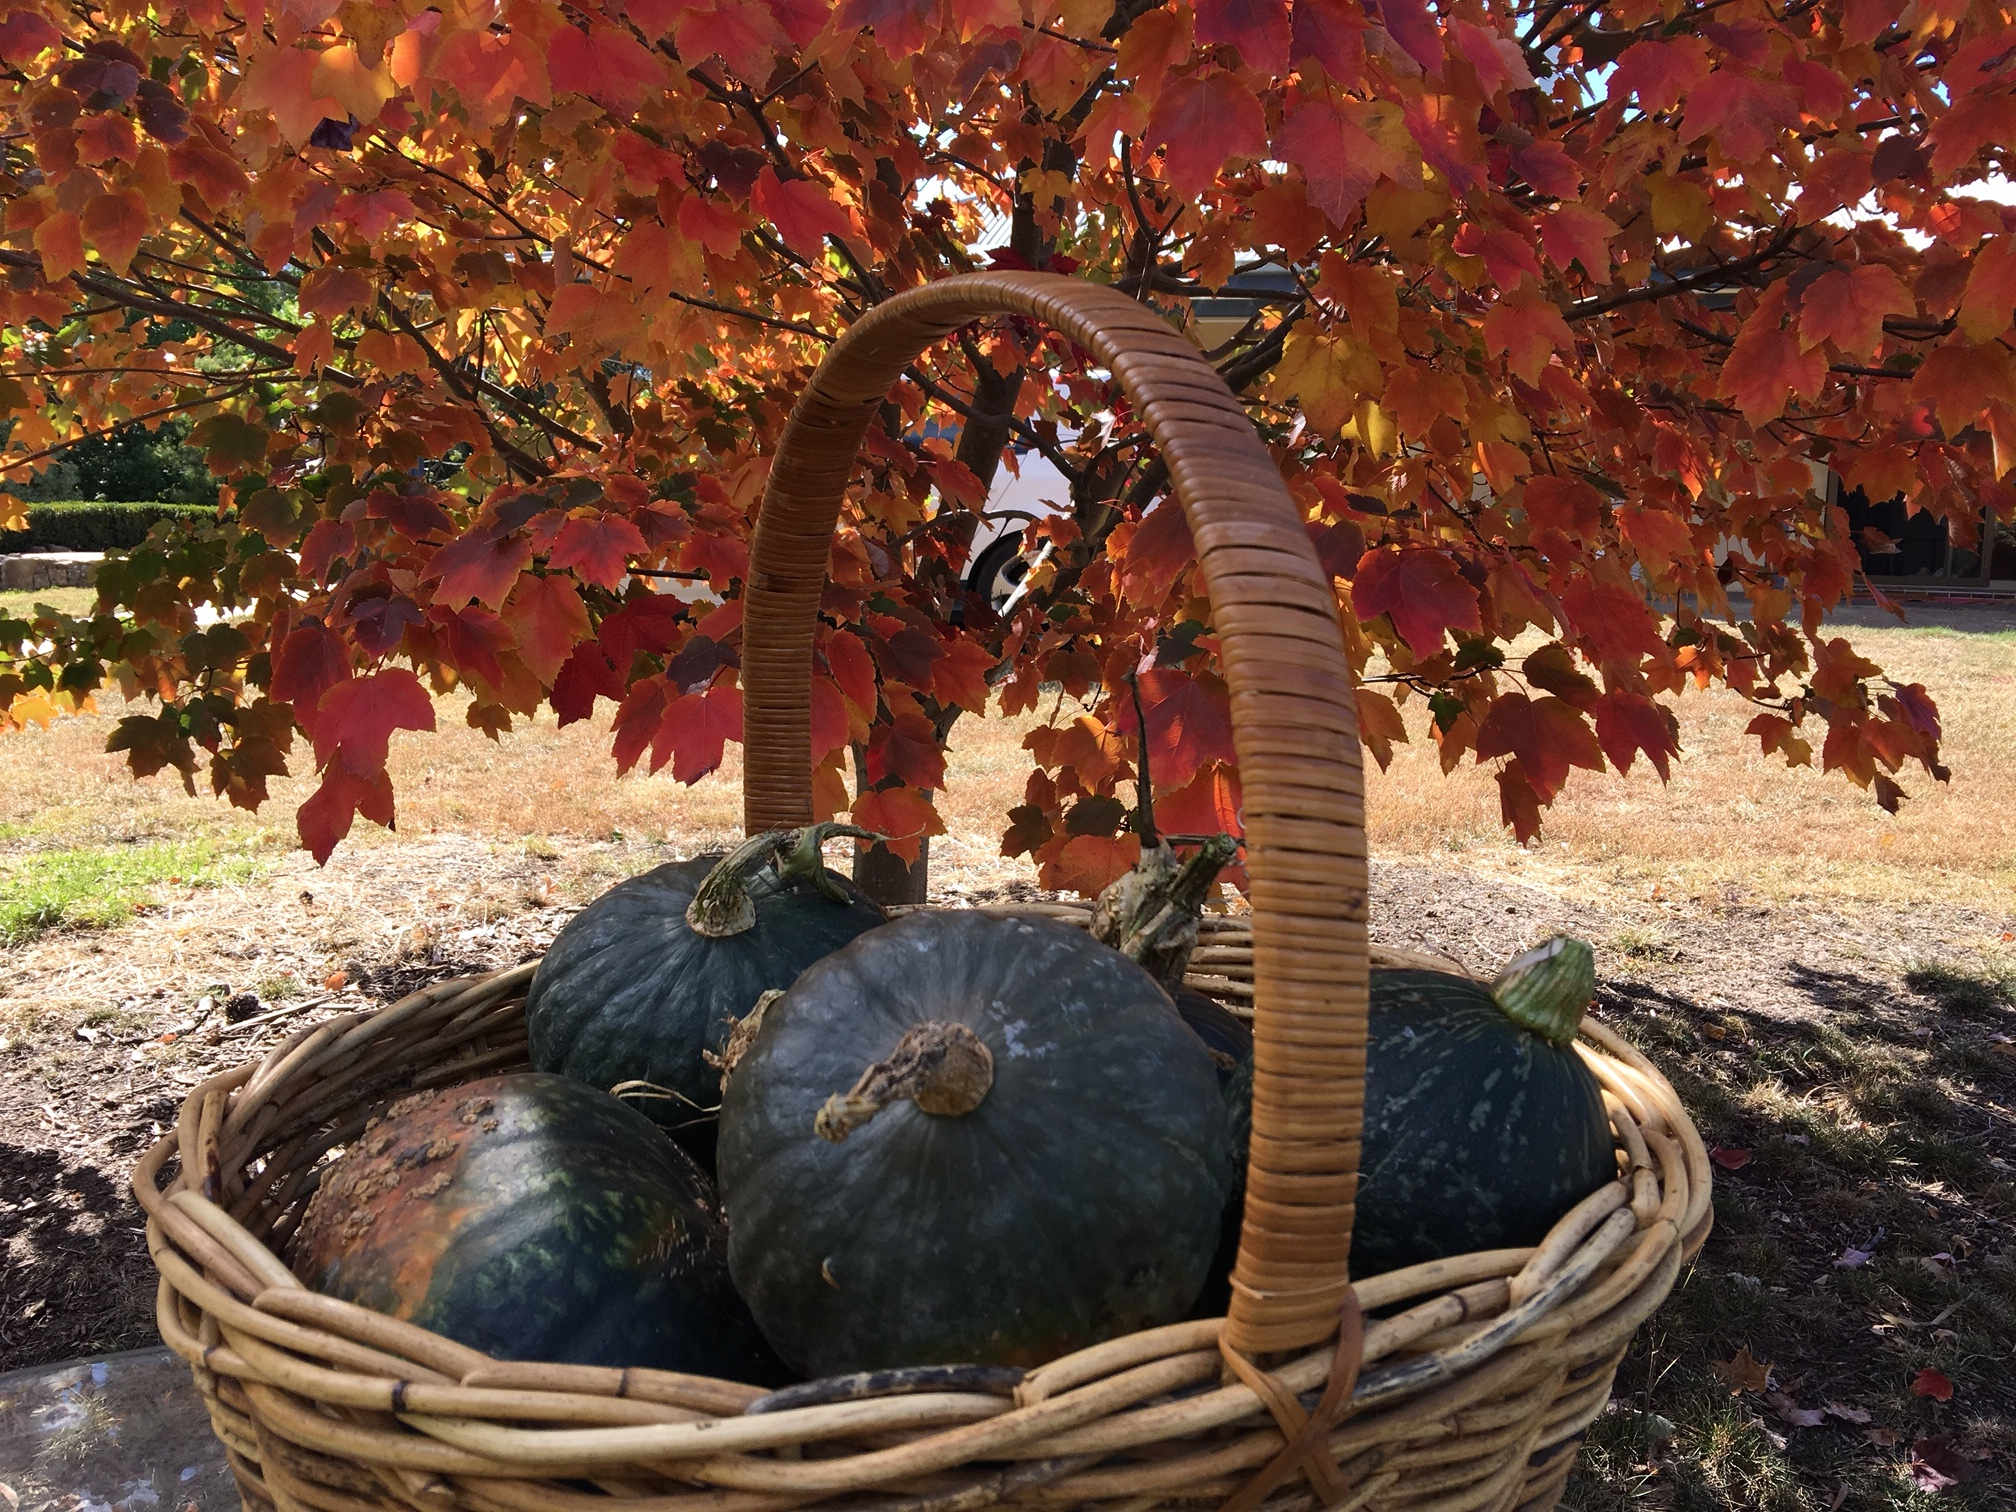 Autumn harvest of pumpkins in a cane basket.